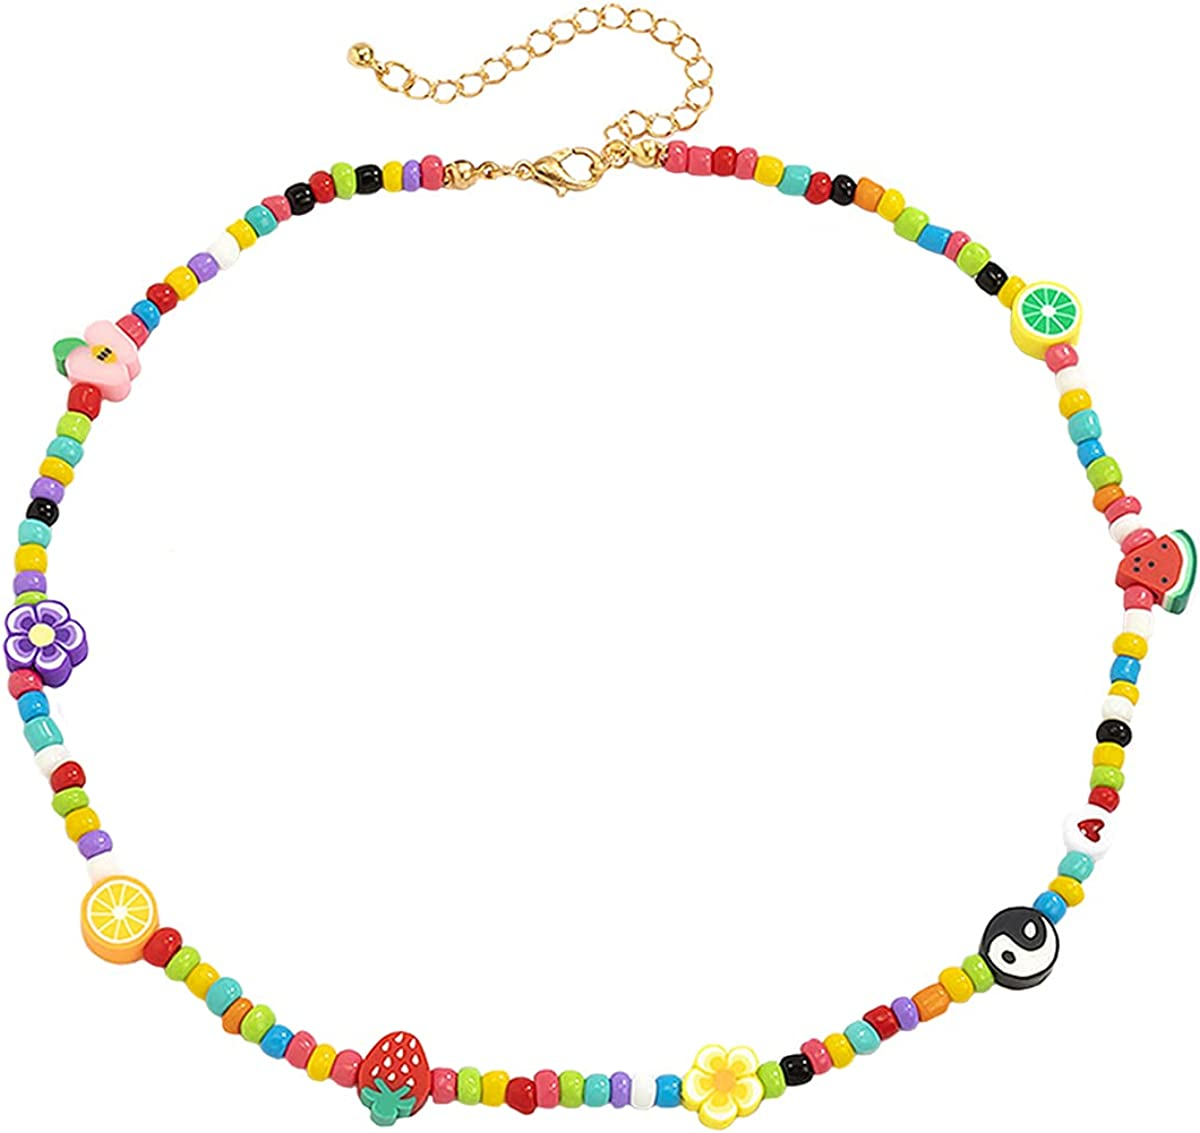 Y2k Aesthetic Indie Jewelry Clay Pearls Beaded Necklaces for Women Teen Girls Gifts DIY